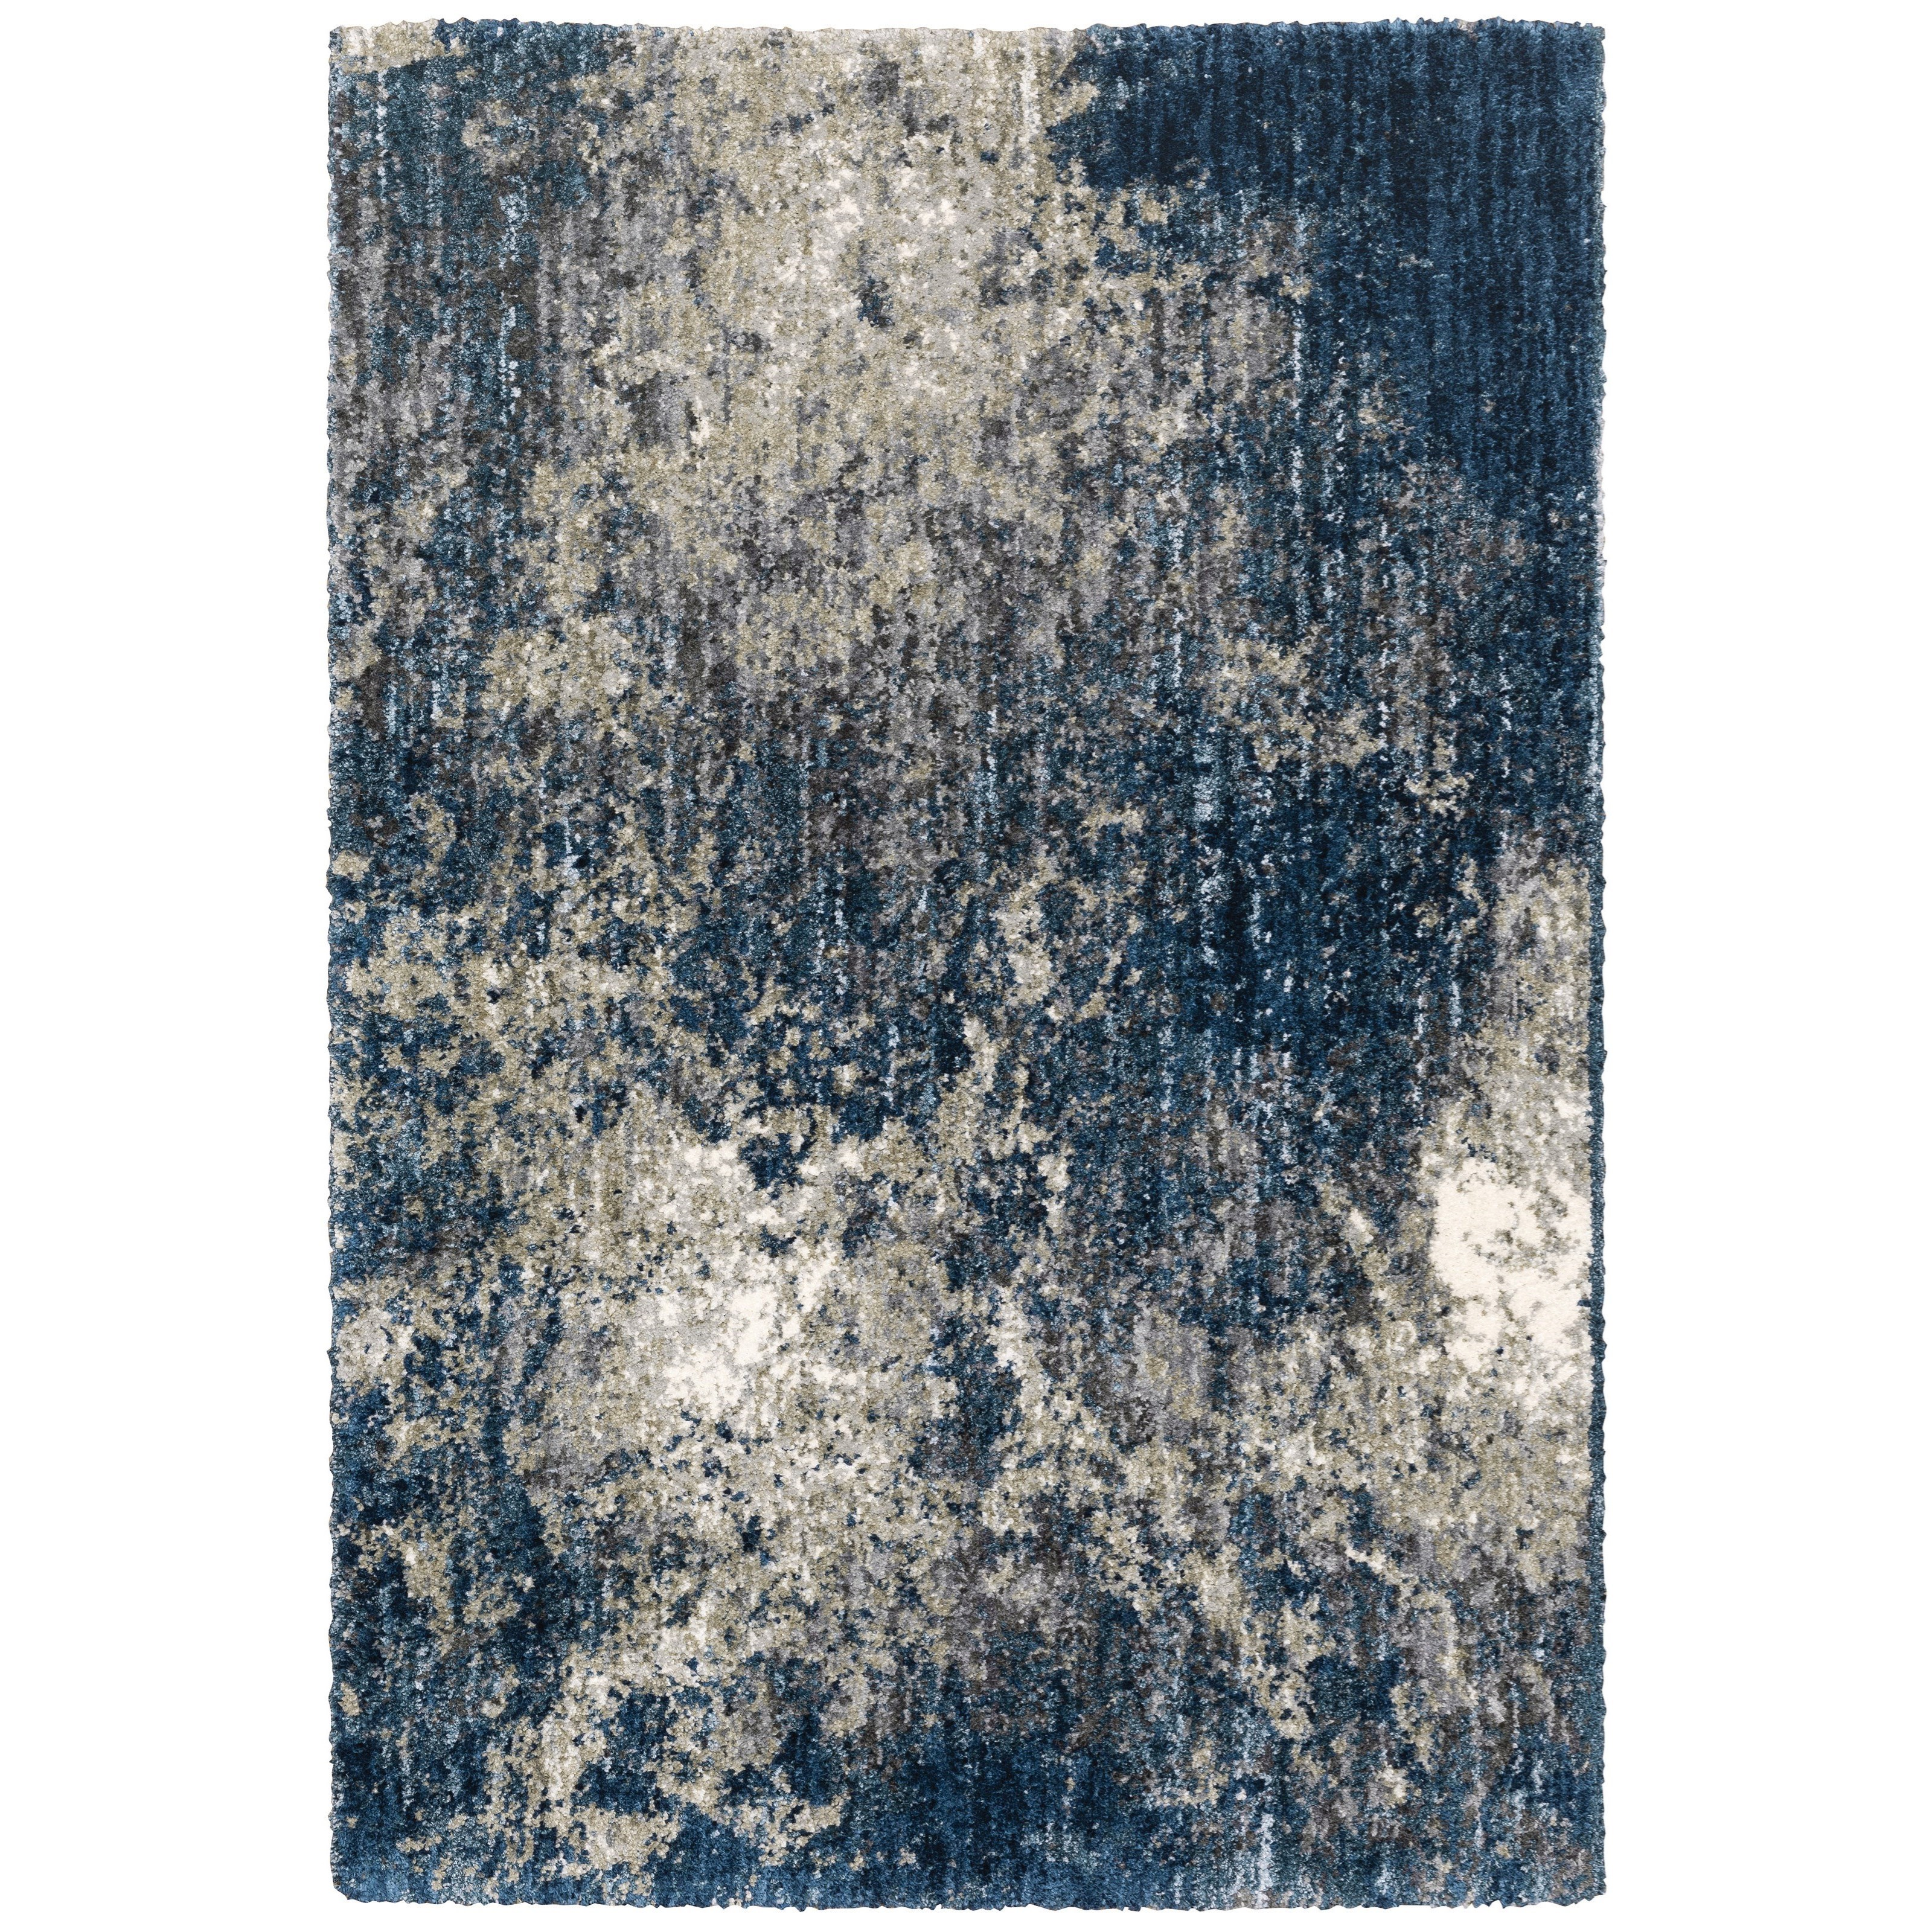 "ASPEN 3'10"" X  5' 5"" Rectangle Rug by Oriental Weavers at Furniture Superstore - Rochester, MN"